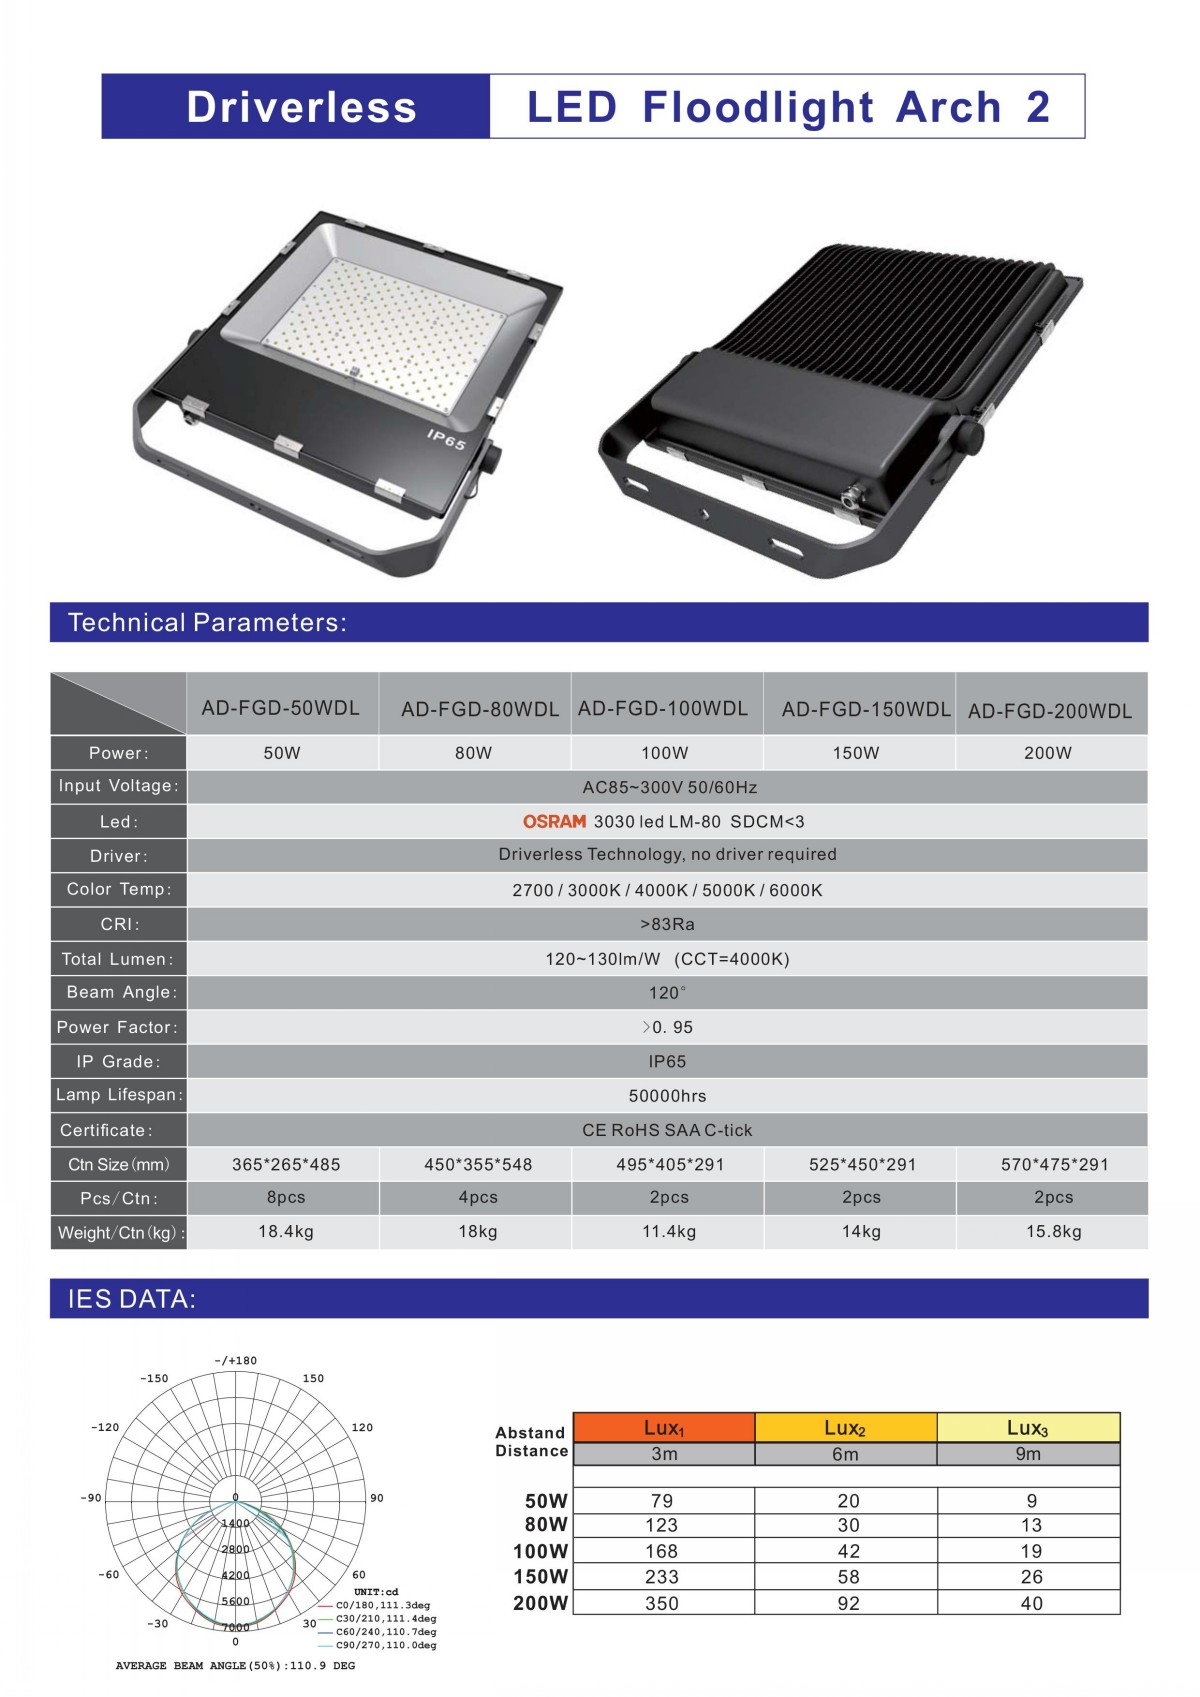 Driverless led flood light data sheet 0001